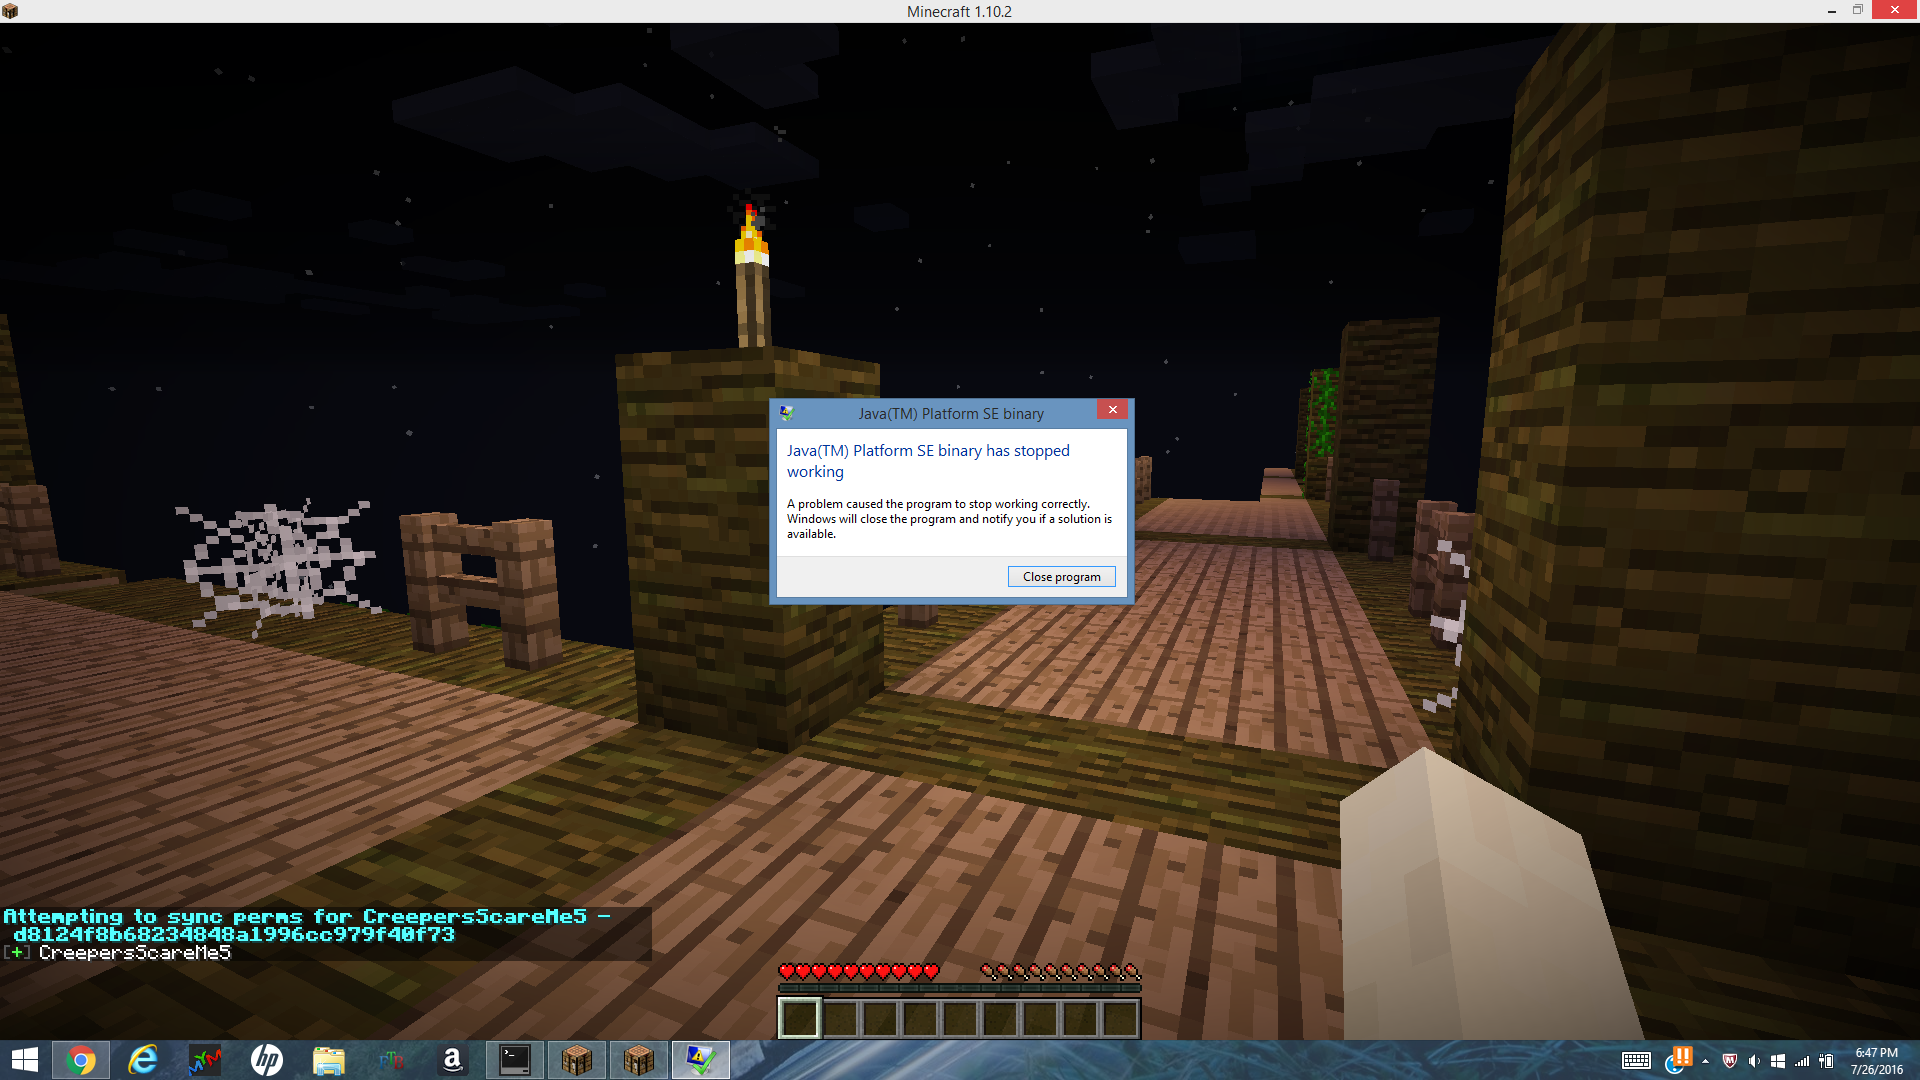 minecraft could not locate openal library